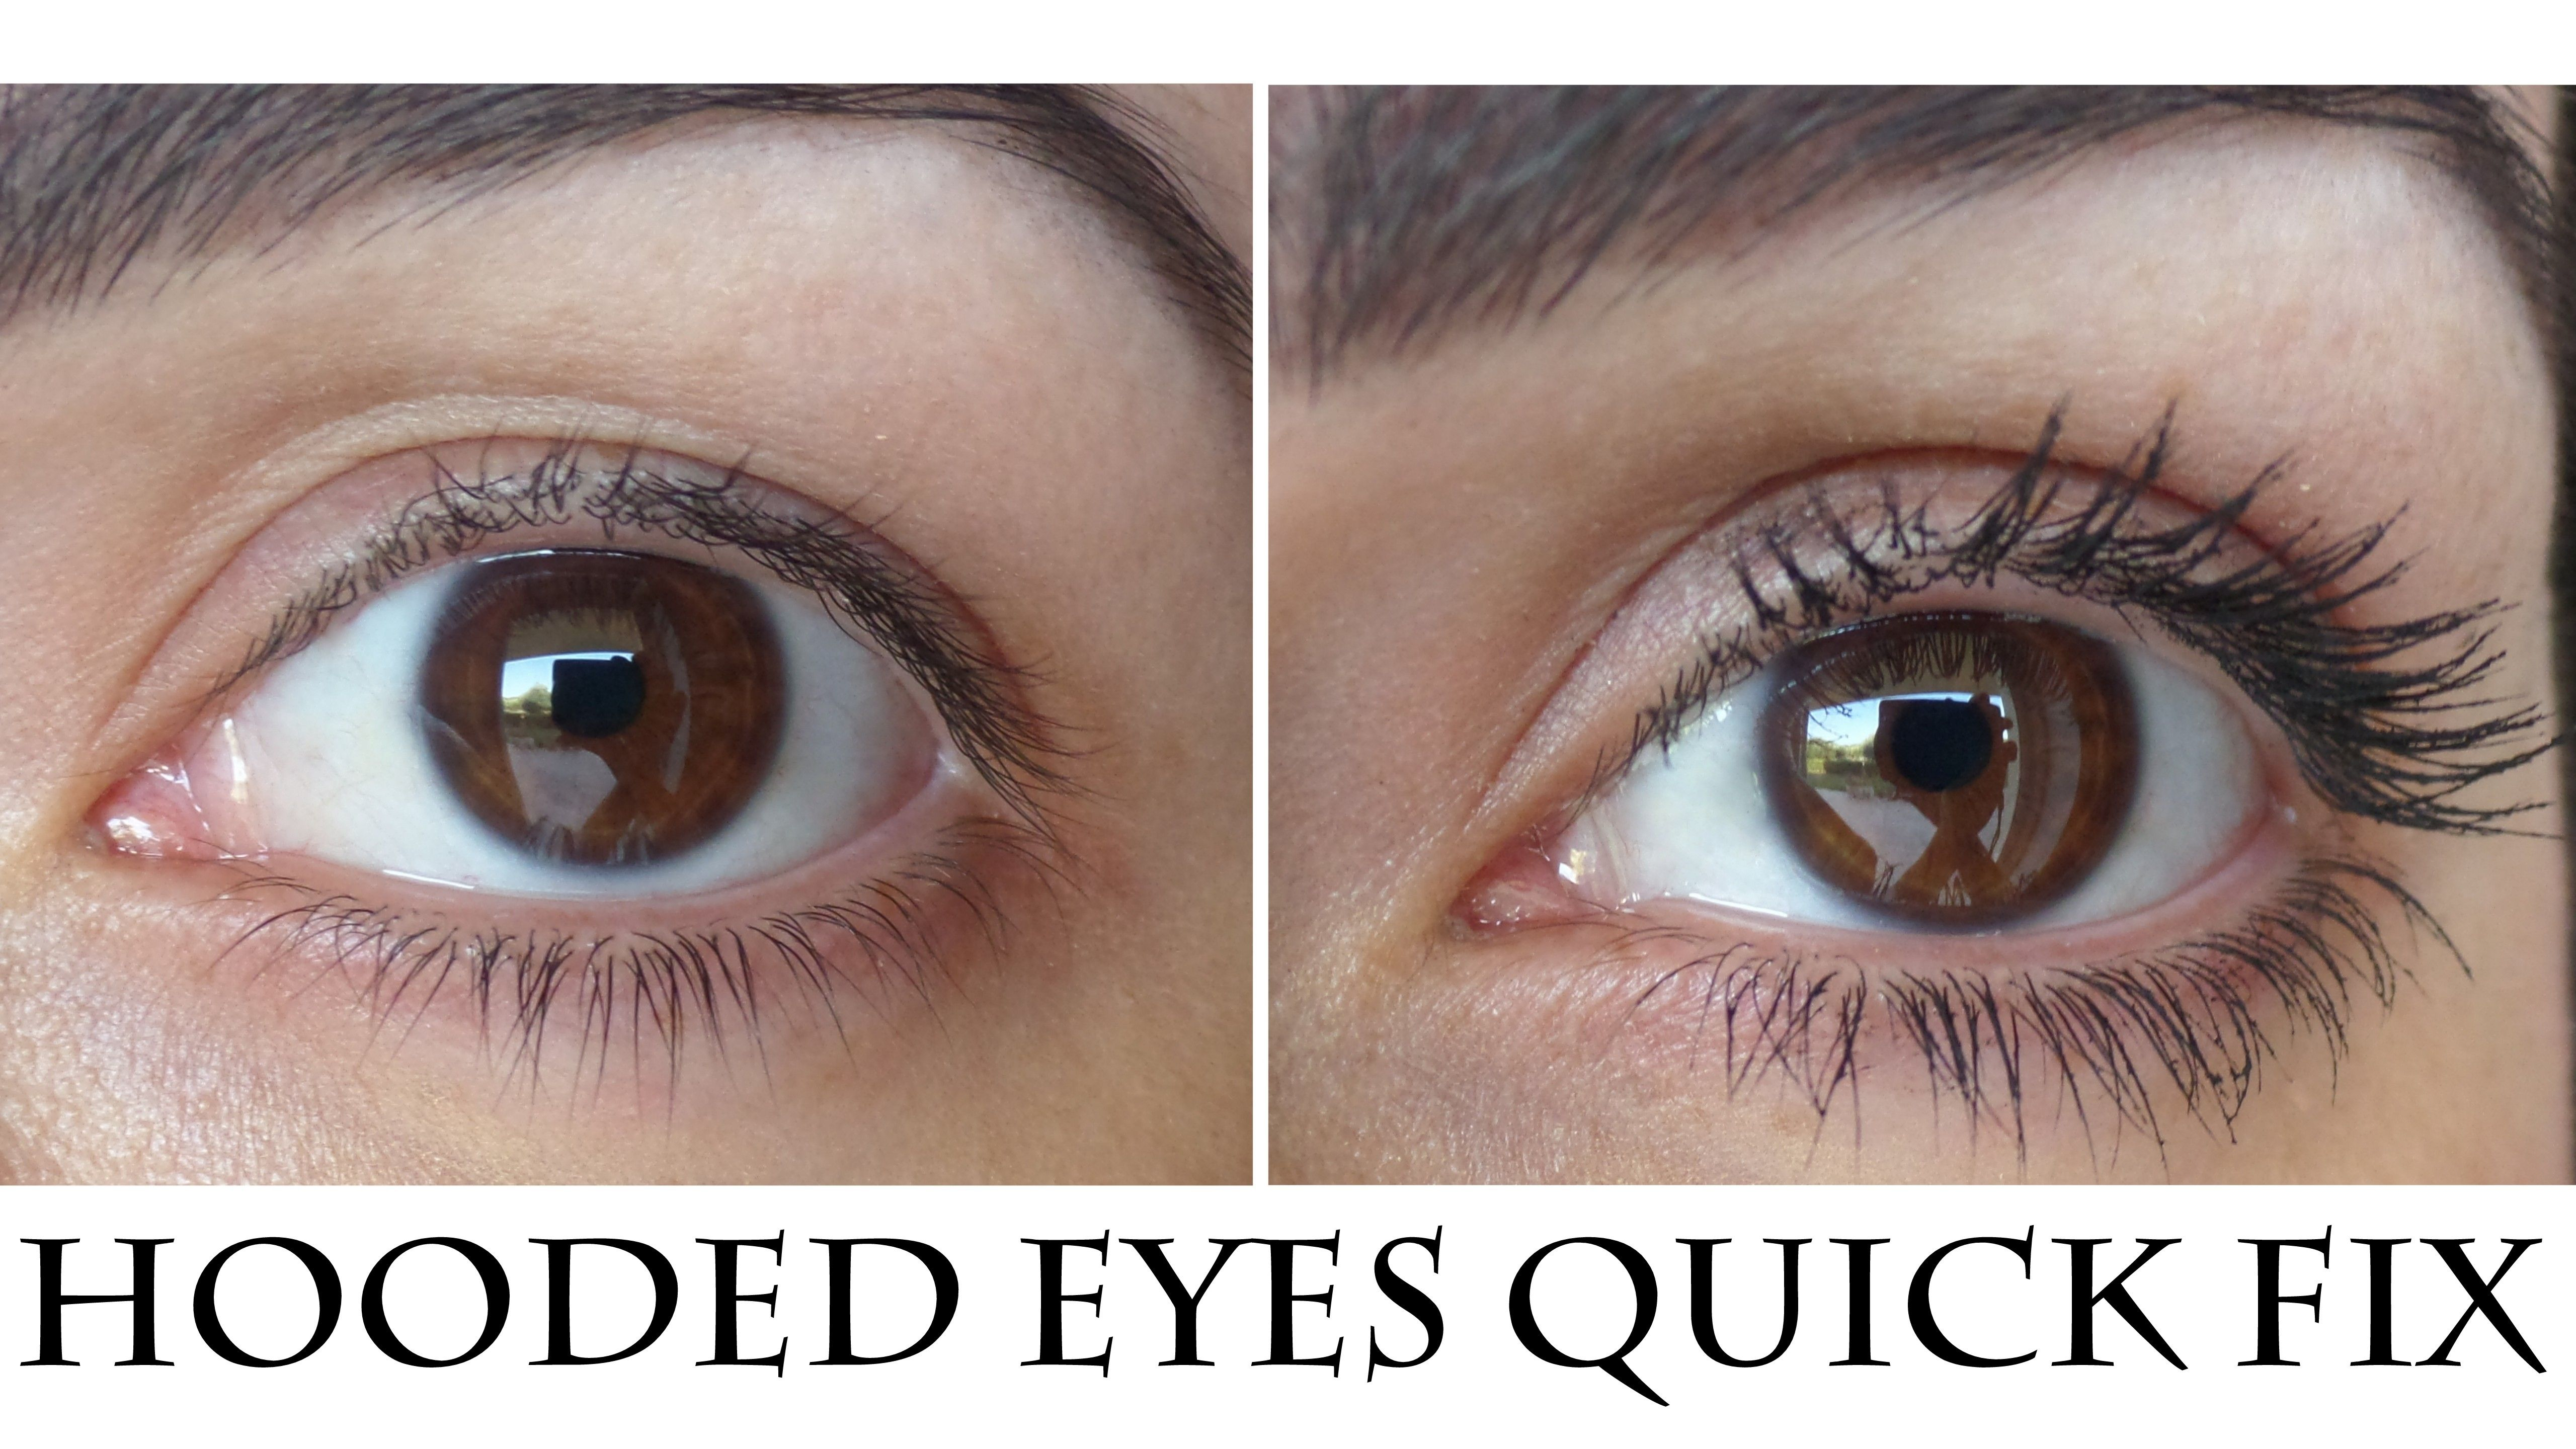 hooded droopy eyelid quick fix Droopy eyelids, Hooded